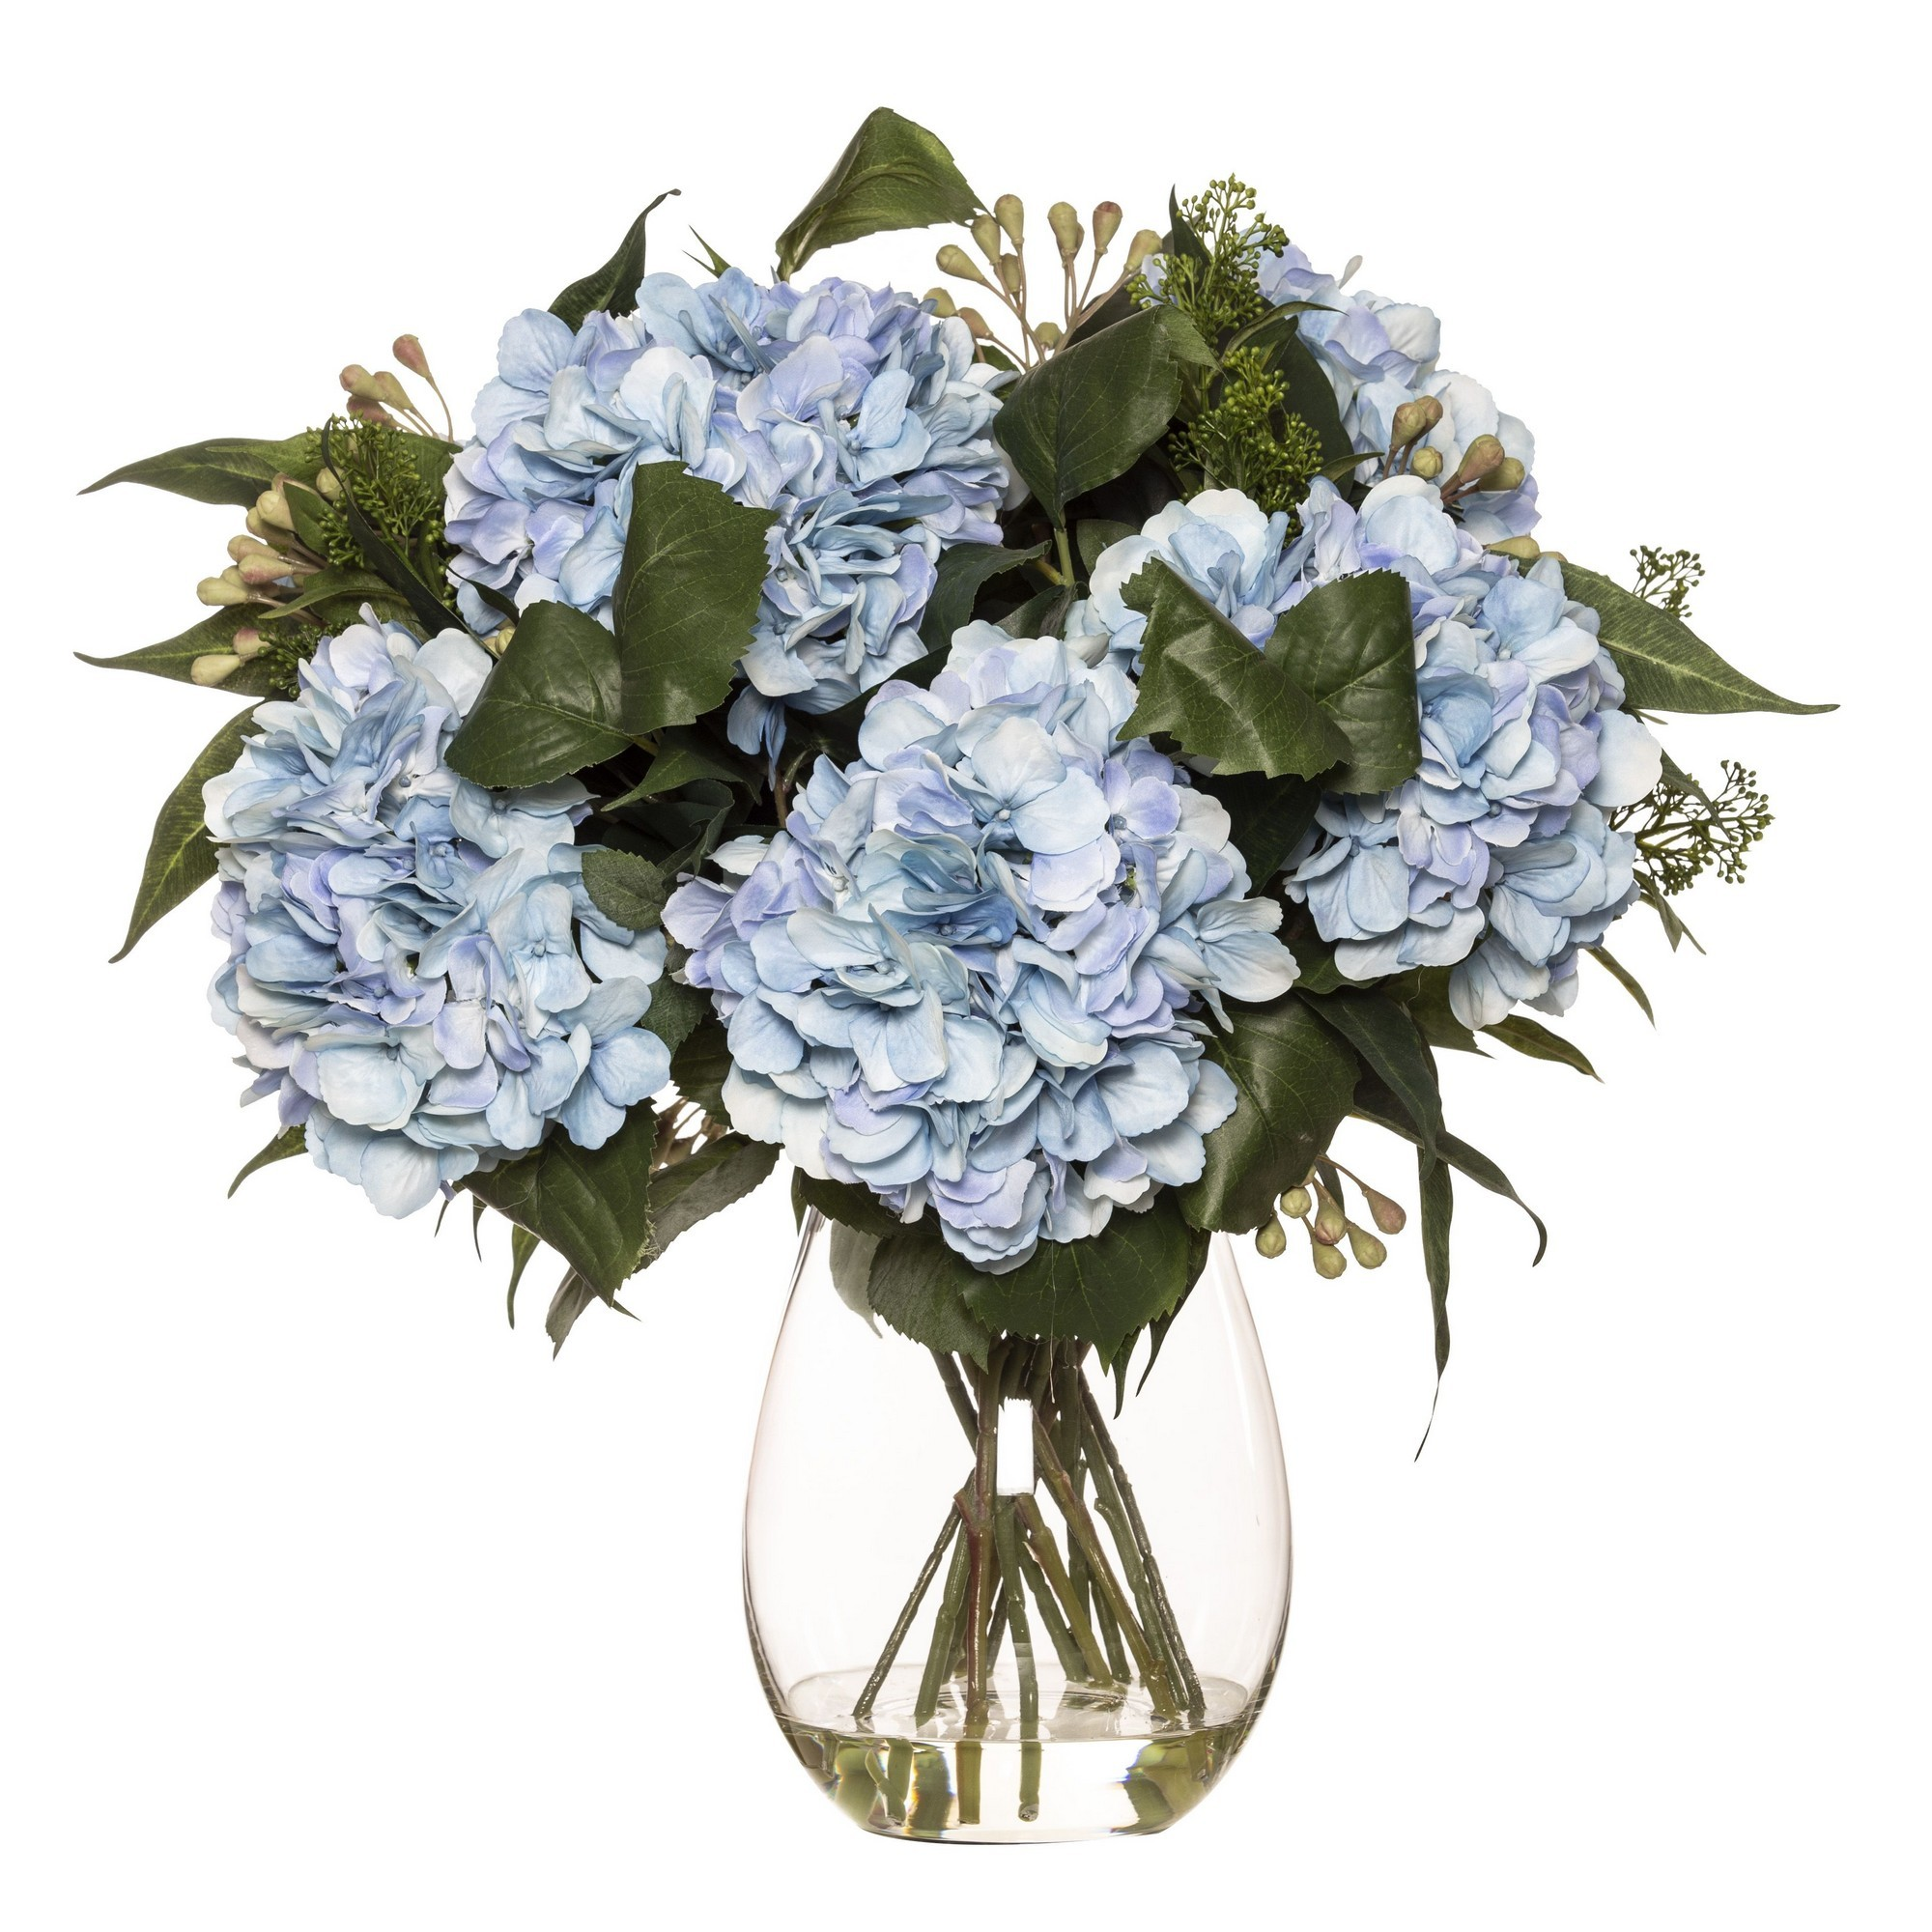 Artificial Hydrangea & Eucalyptus Mix in Claire Vase, Blue Flower, Large